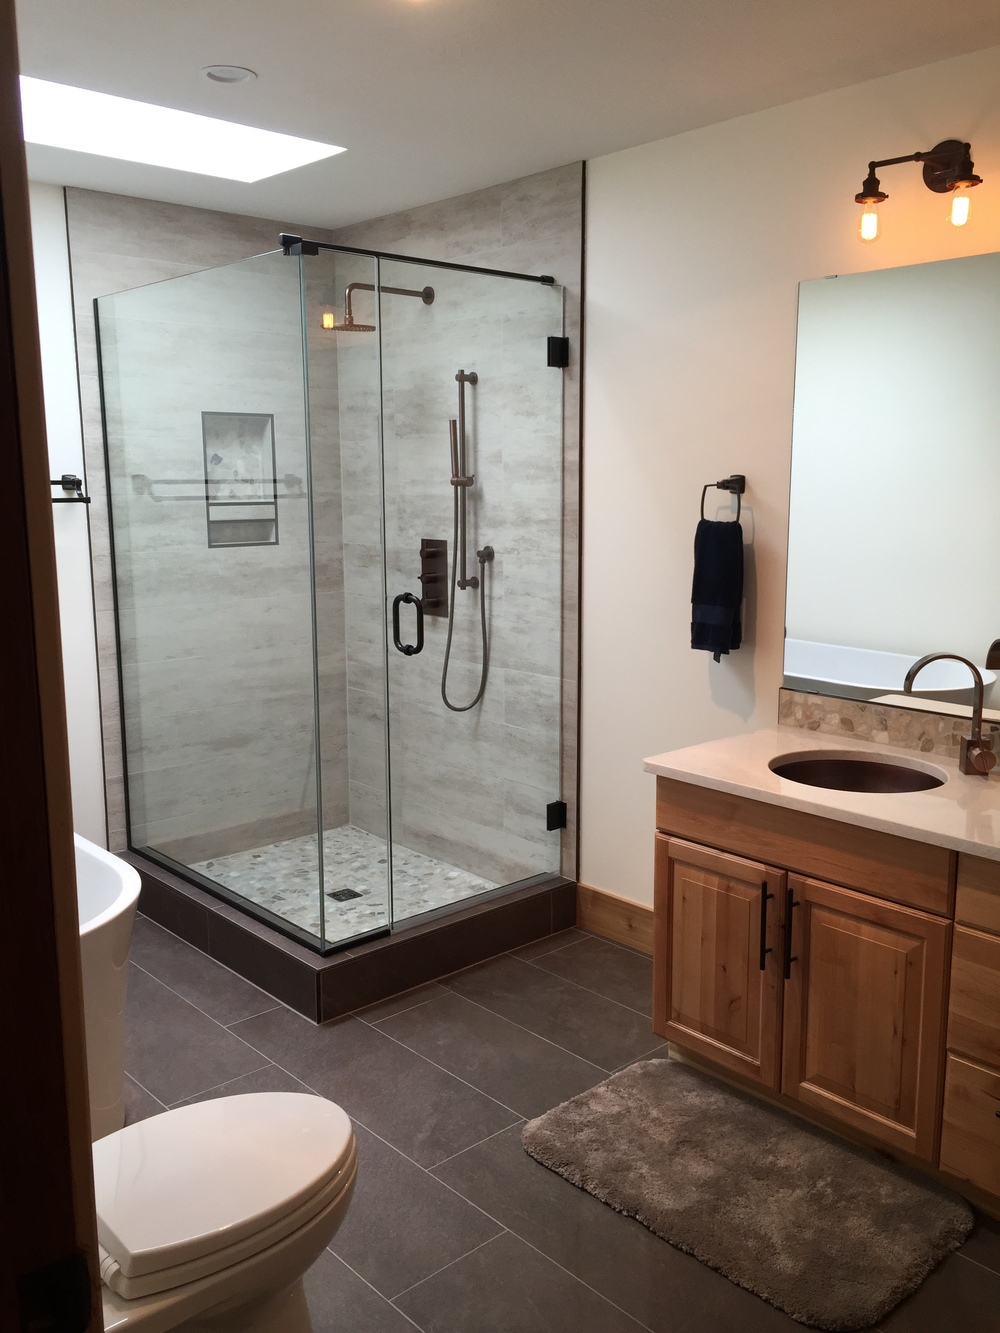 Custom shower, pebble shower floor and backsplash, large format porcelain tile, antique bronze fixtures.